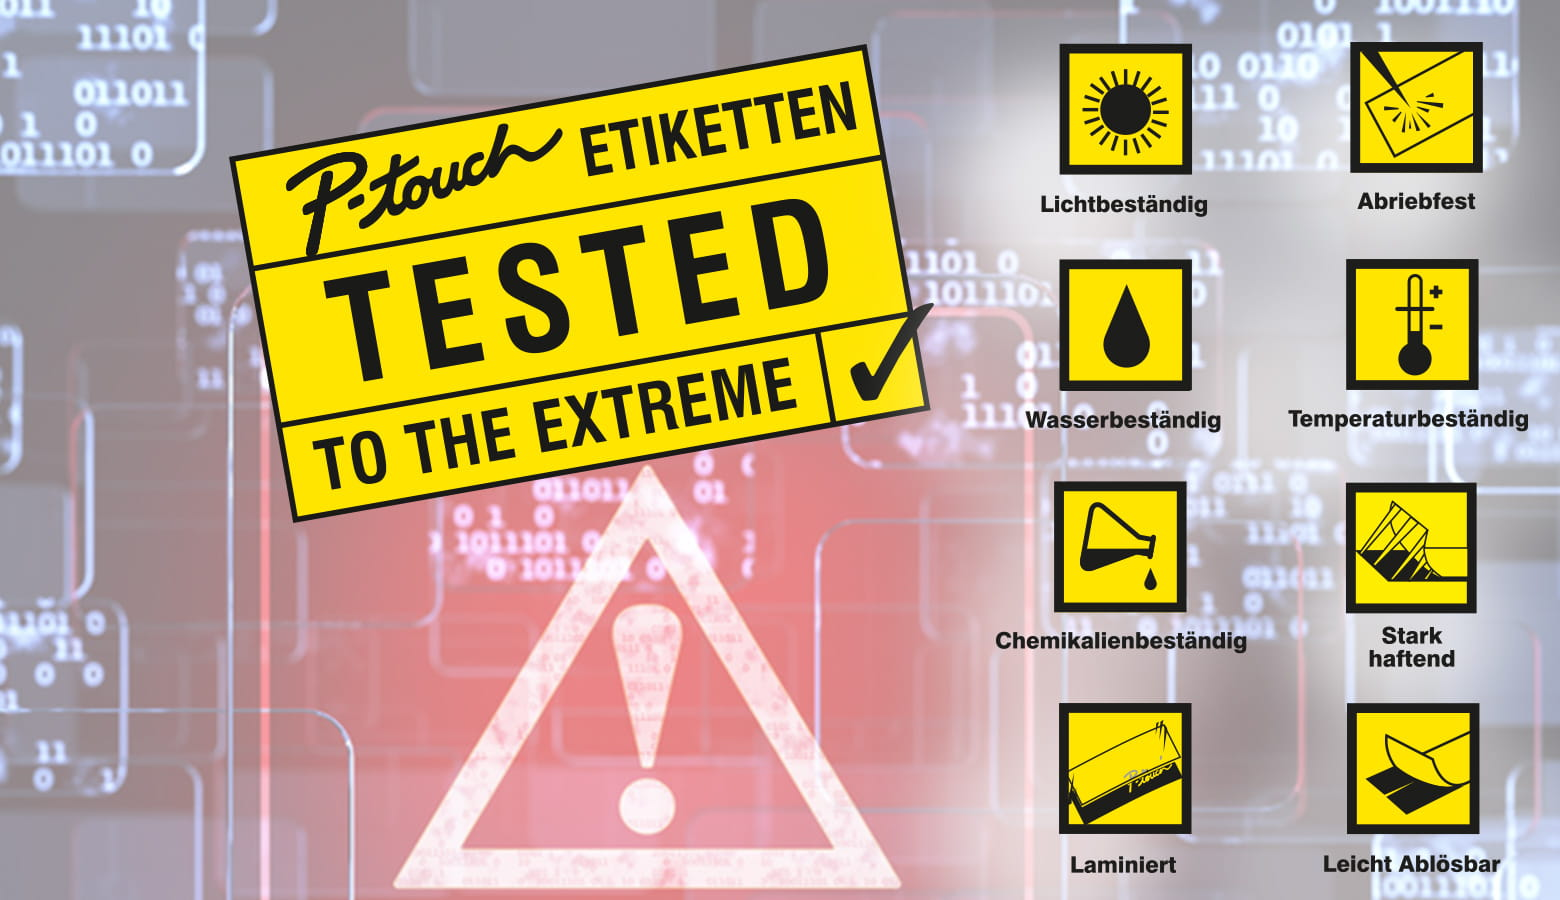 Etikett TESTED TO THE EXTREME